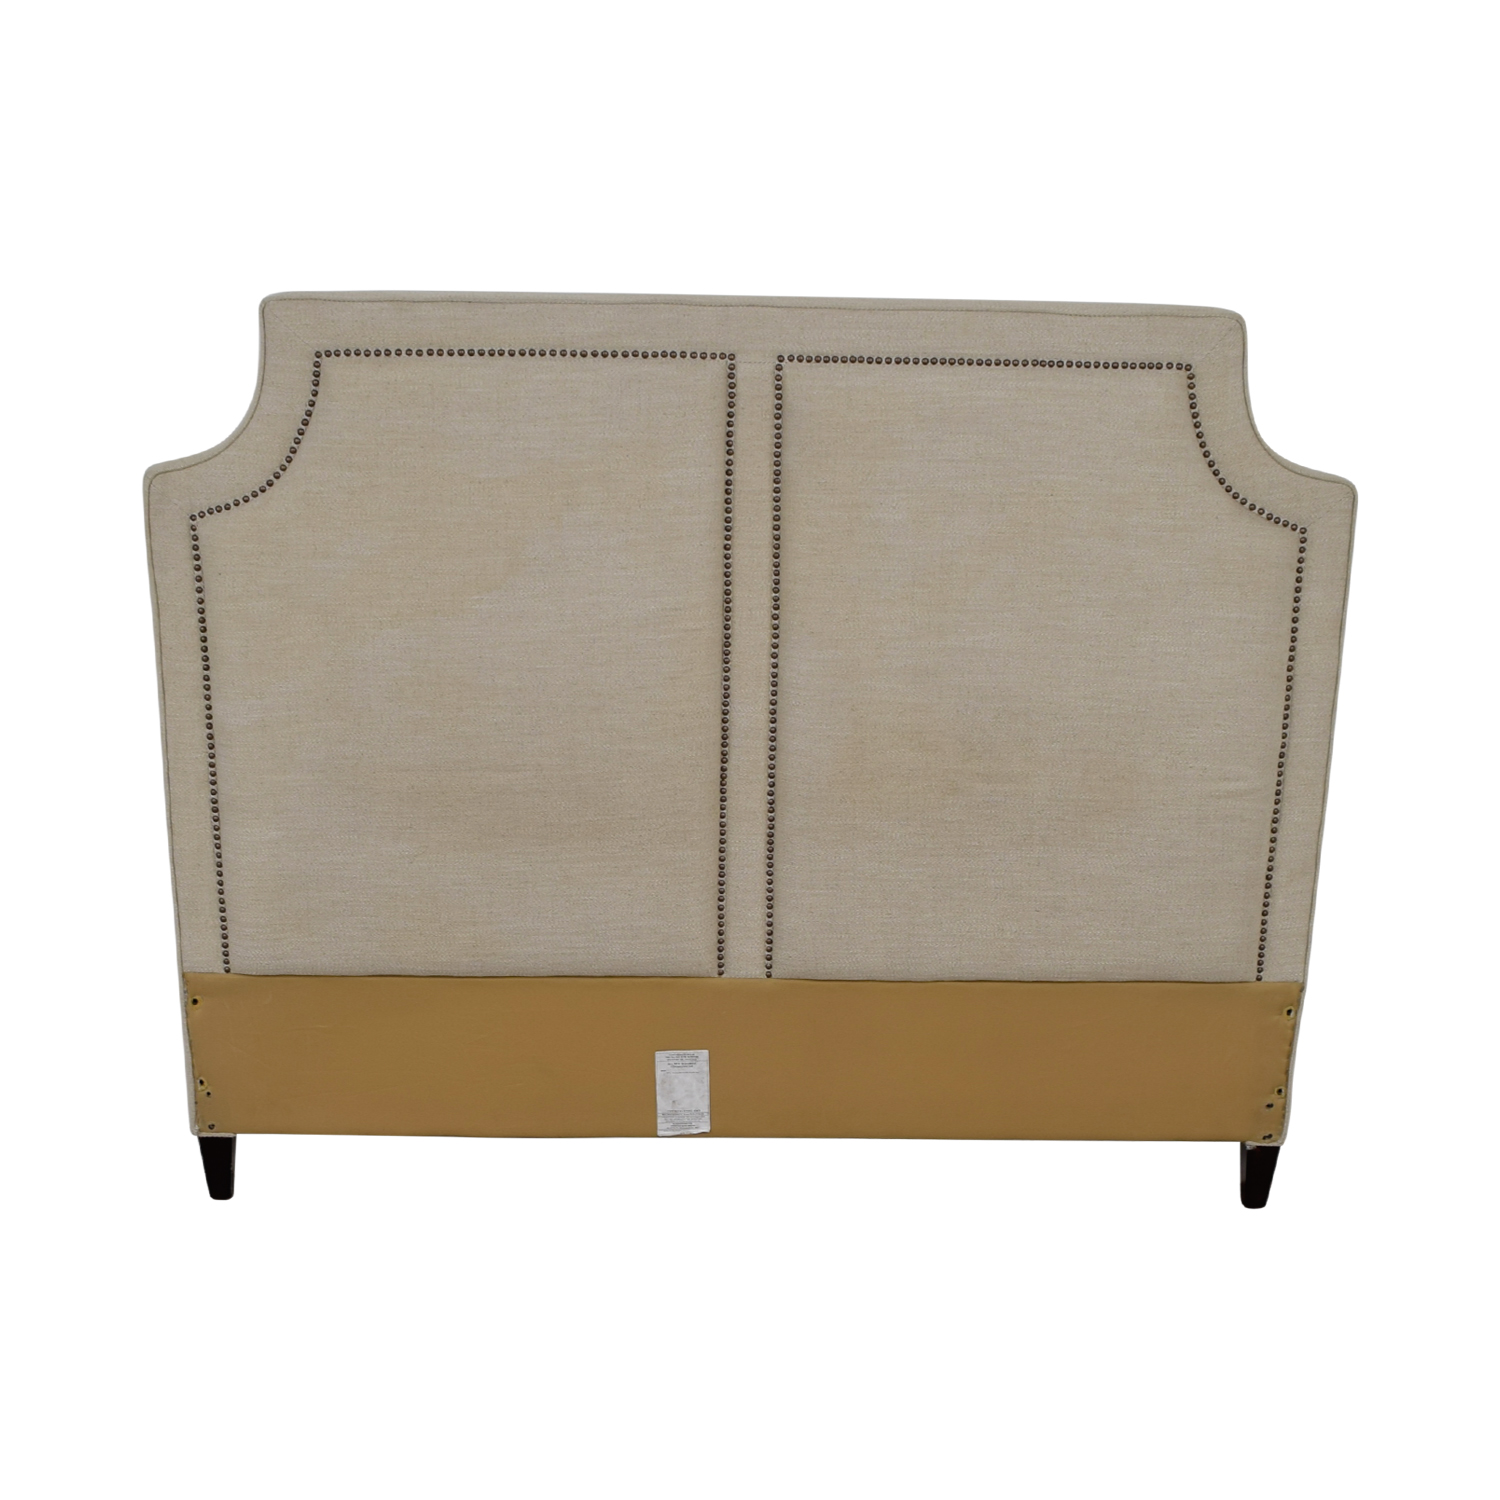 Thomasville Thomasville Beige Nailhead King Headboard coupon